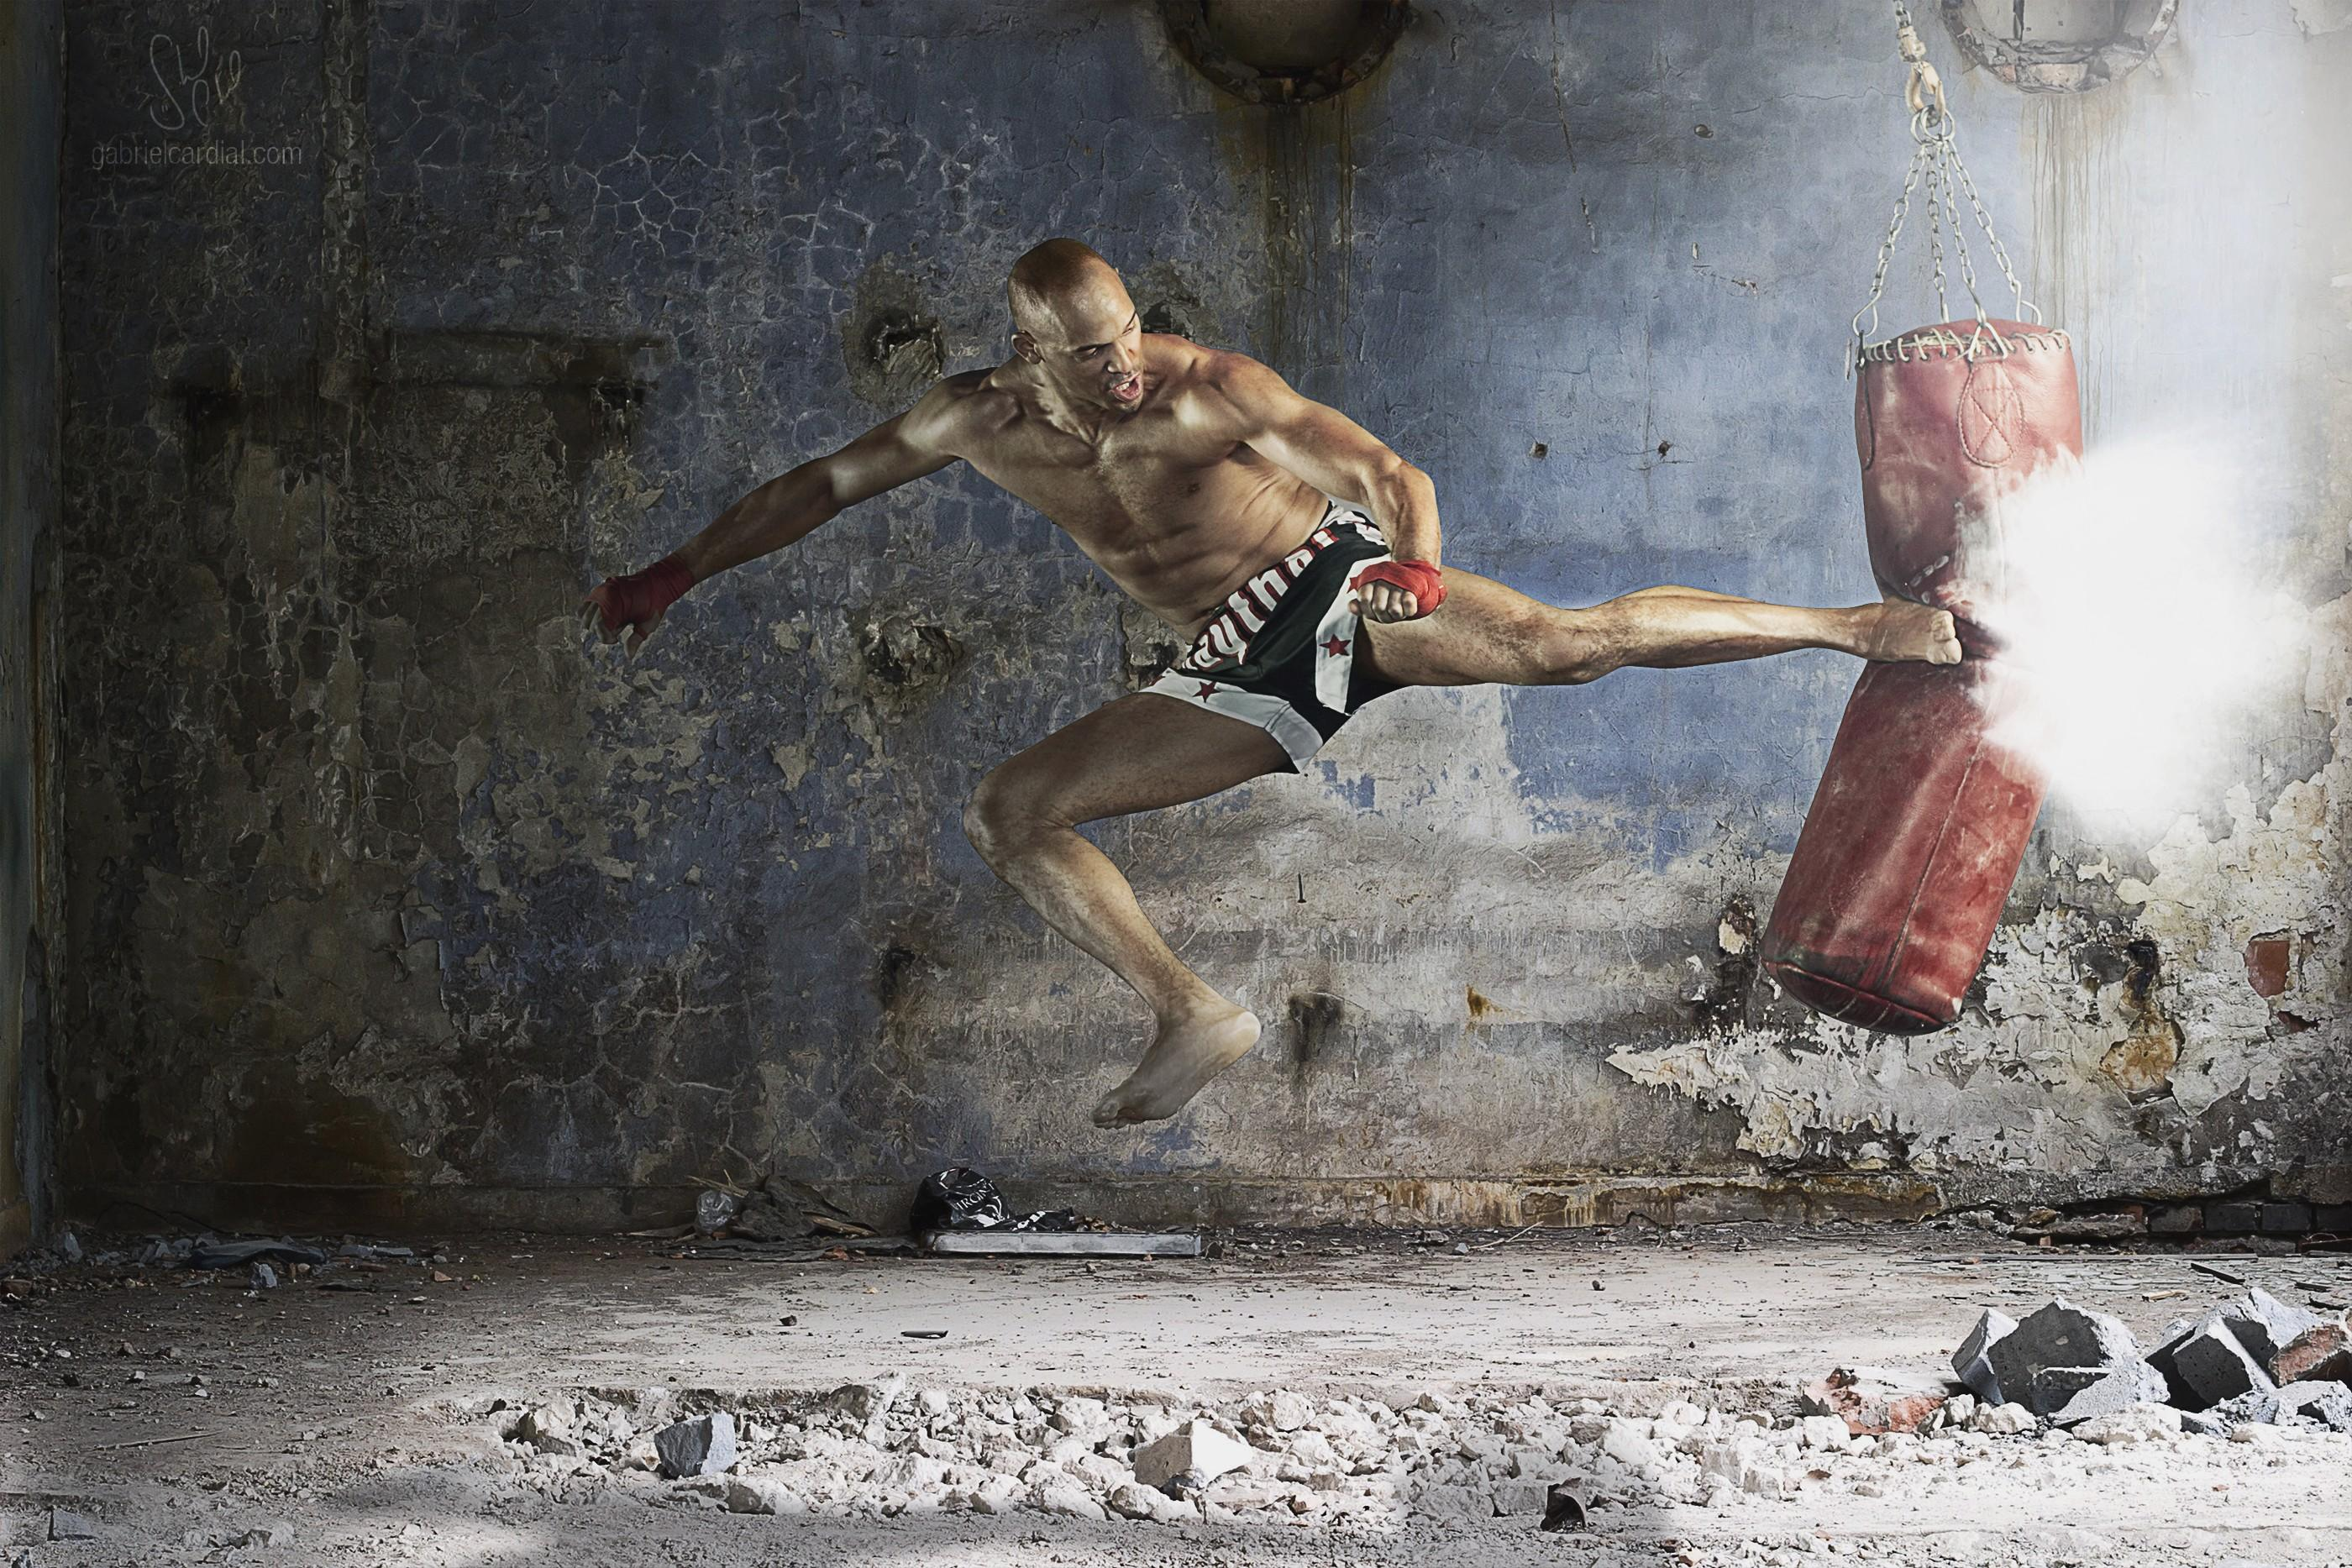 Kickboxing Wallpaper 104 images in Collection Page 1 2800x1867